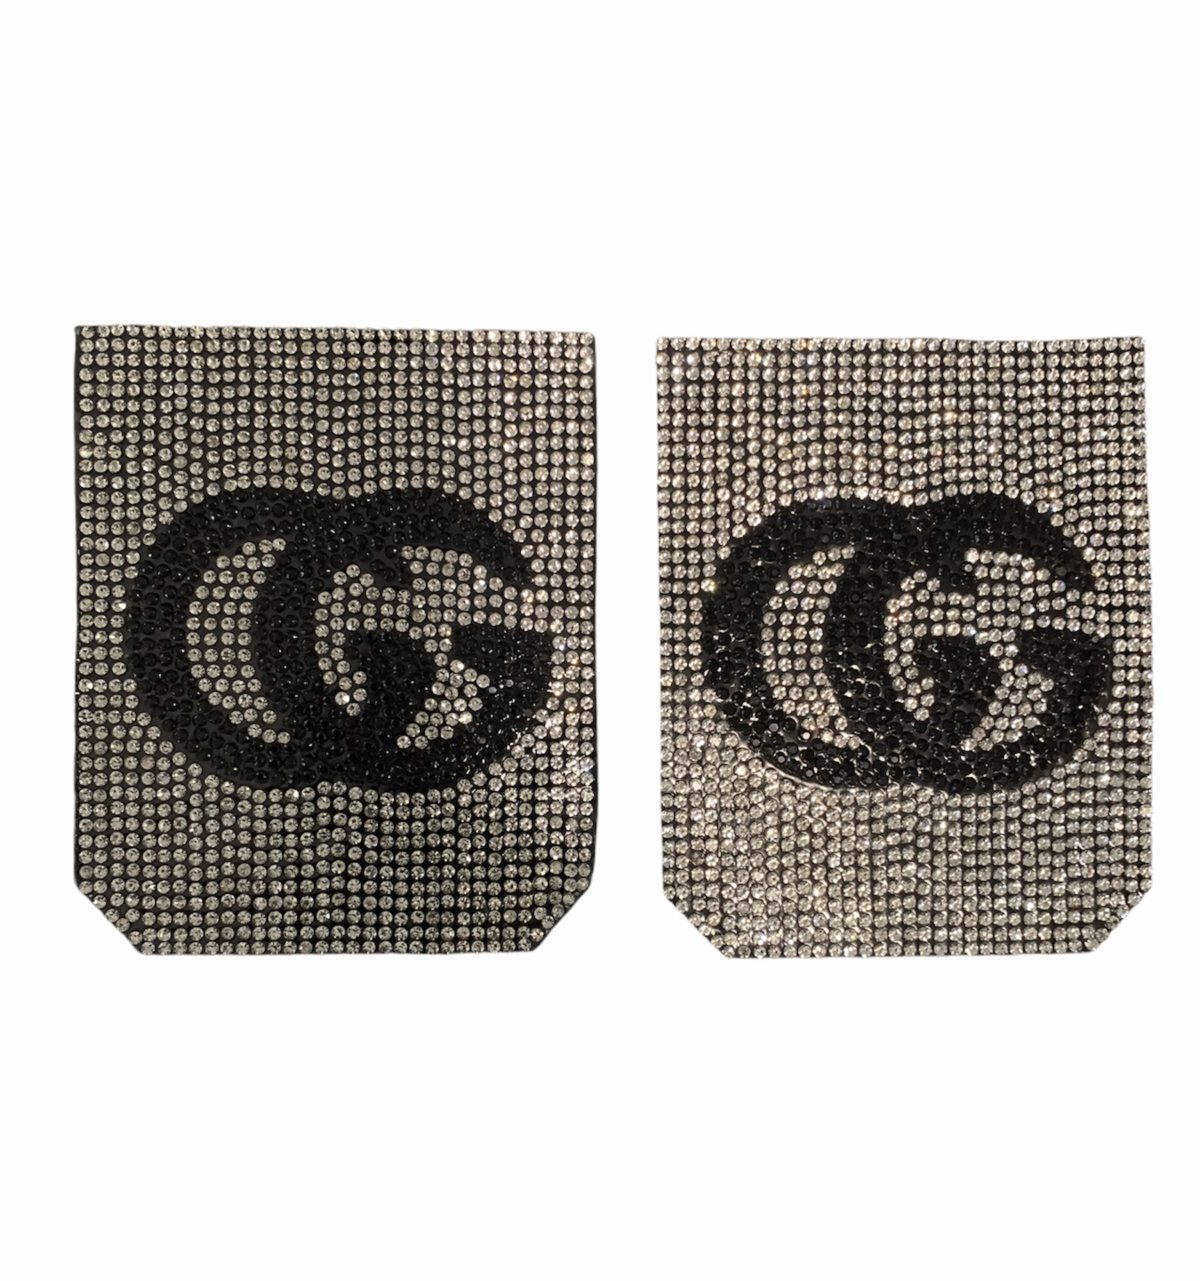 NEW Rhinestone GG Inspired Pocket Patch, Applique,  Iron On, Hot fix DIY clothing 3